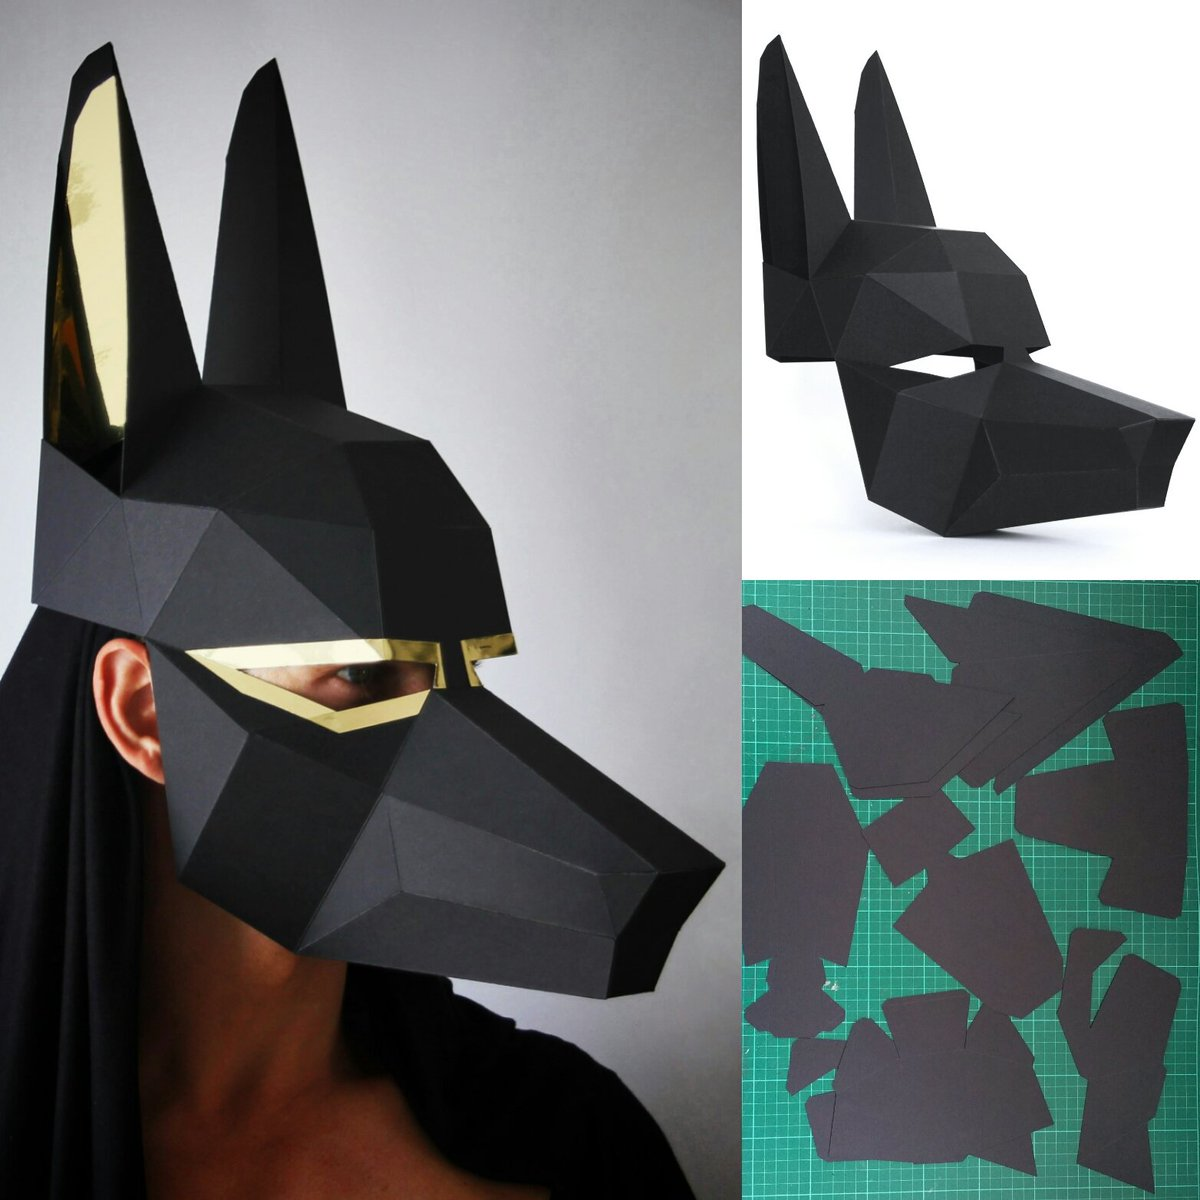 ntanos on twitter halloween sorted with egyptian god of the dead anubis print cut glue decorate etsy papercraft mask ntanos